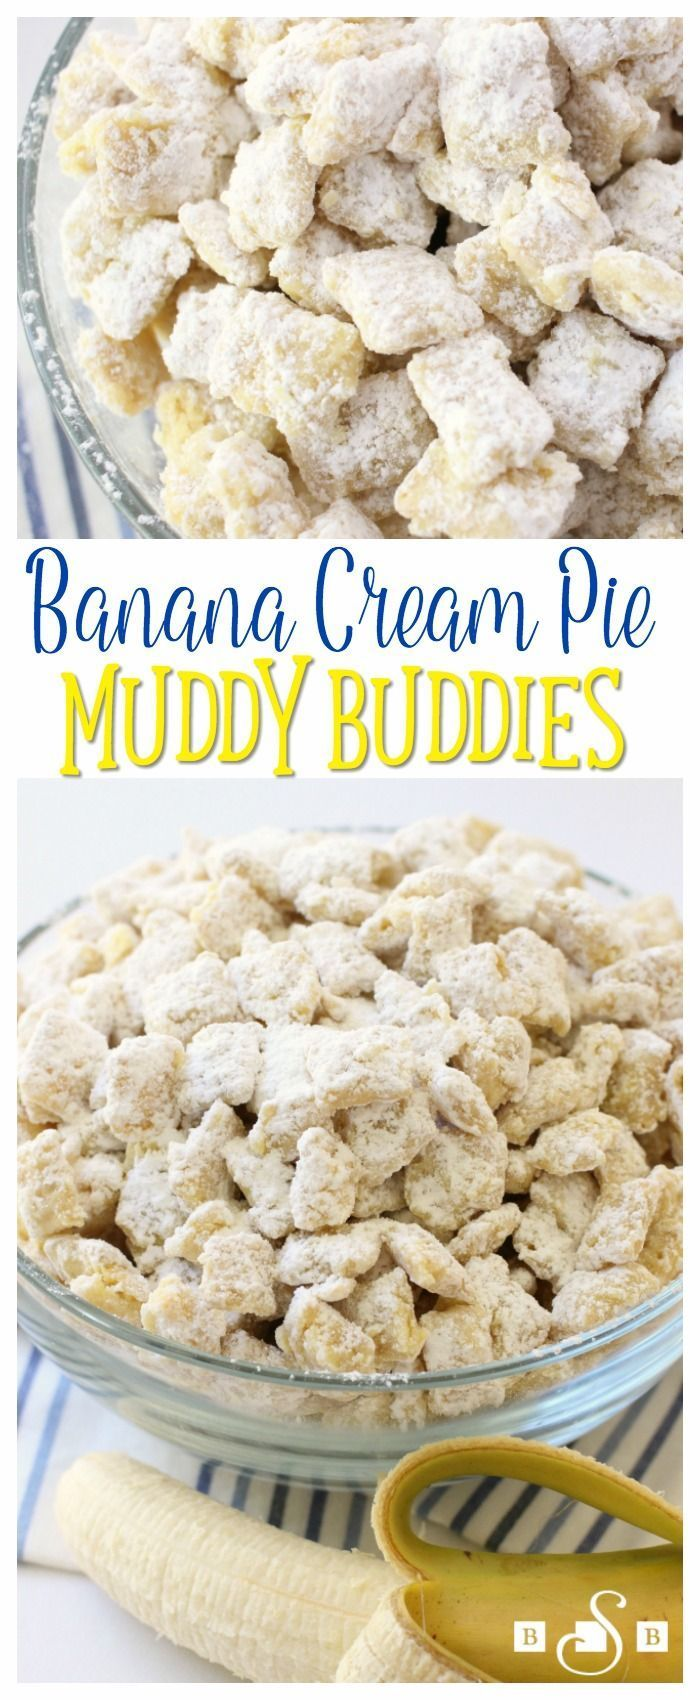 Banana Cream Pie Muddy Buddies - If you are a fan of Banana Cream... this is a perfect snack idea.